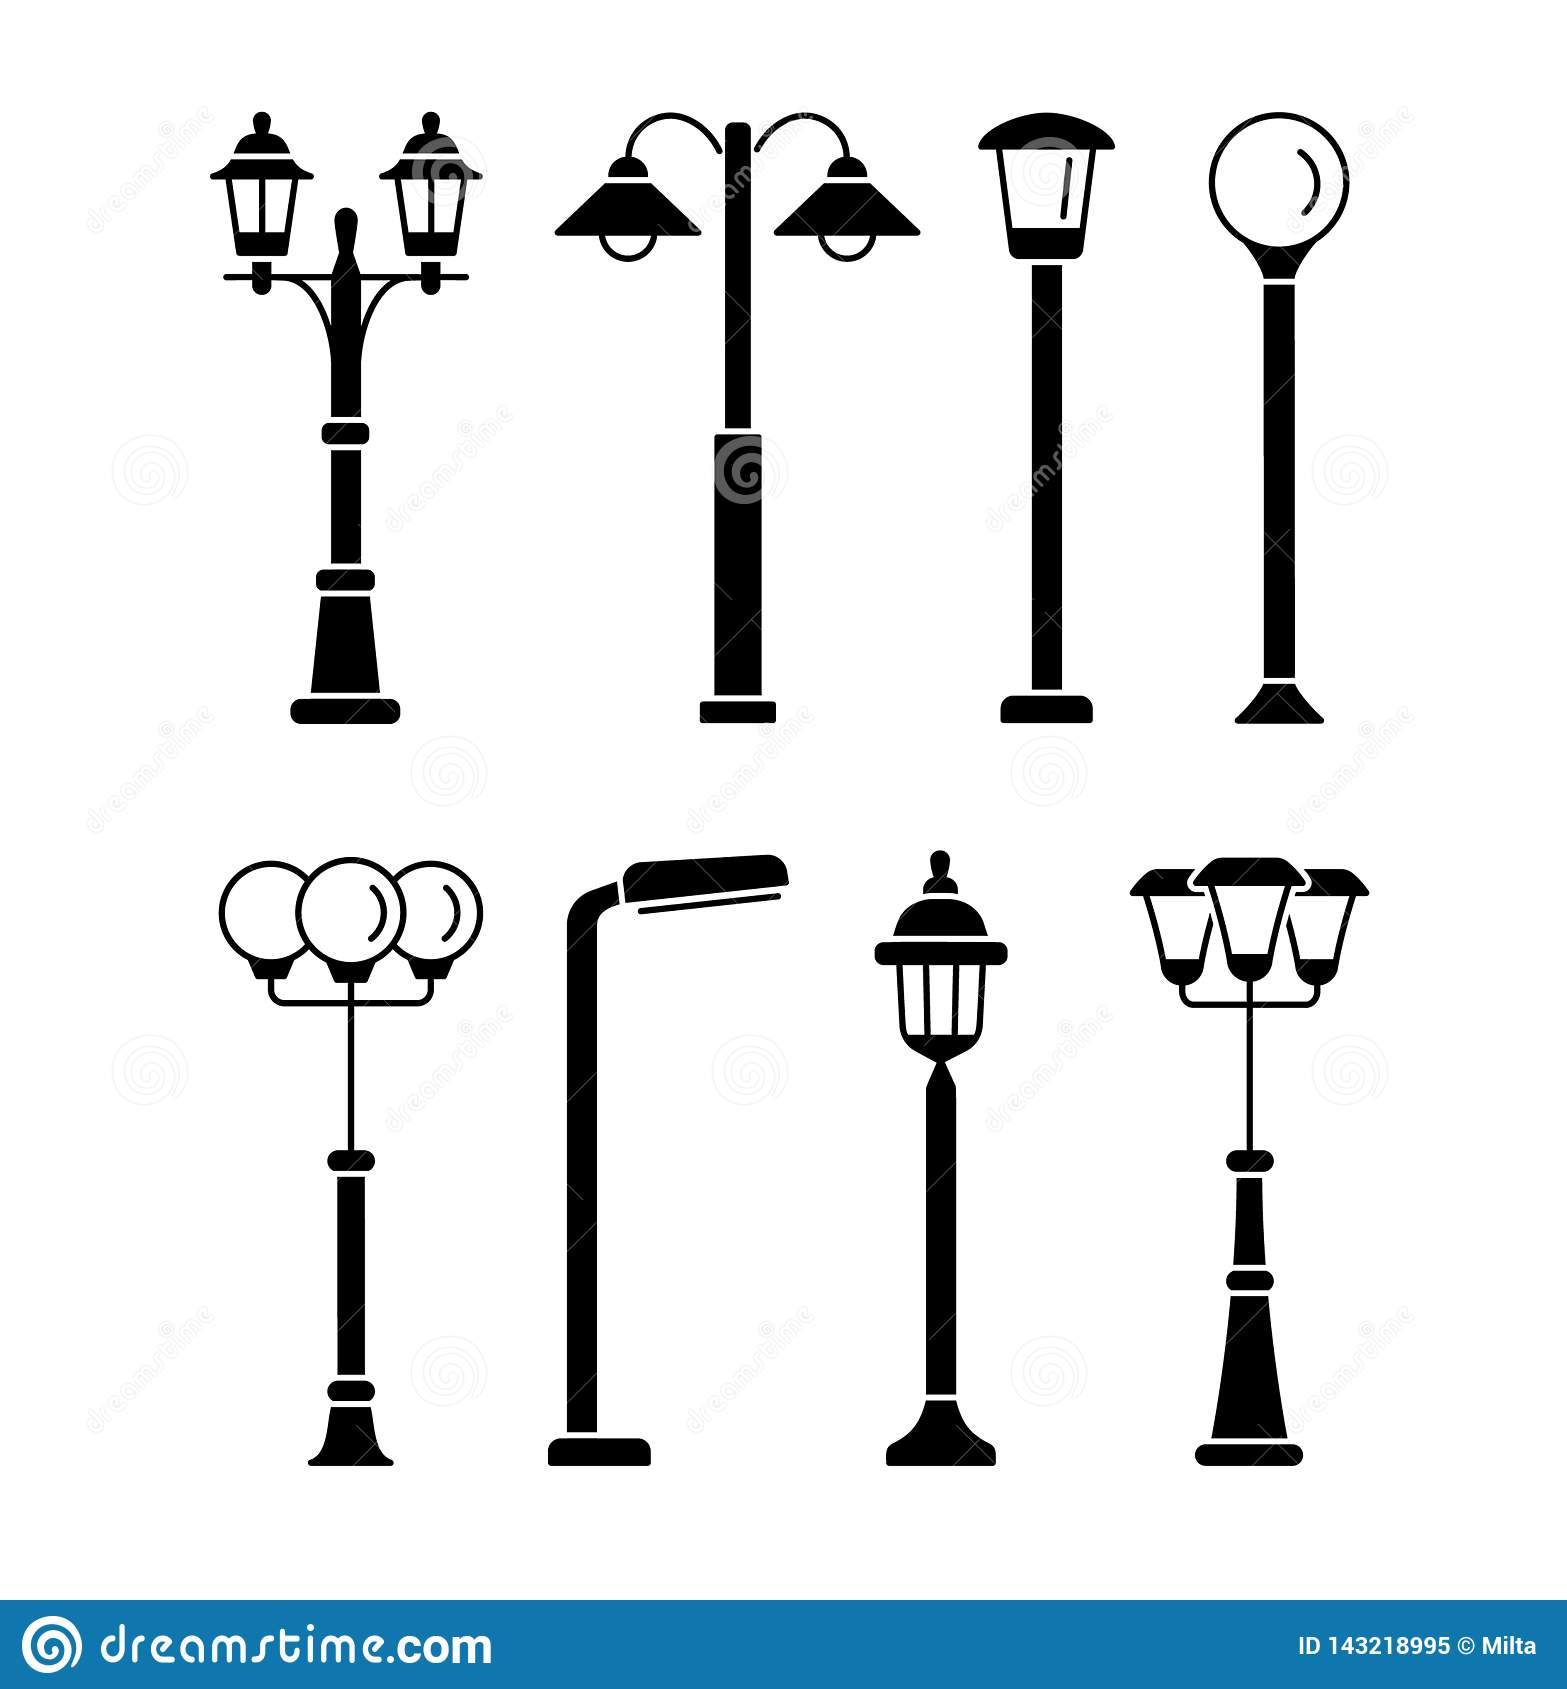 garden lighting stock illustrations 1 326 garden lighting stock illustrations vectors clipart dreamstime https www dreamstime com street lights outdoor park garden lighting vector flat icon set isolated objects white background image143218995